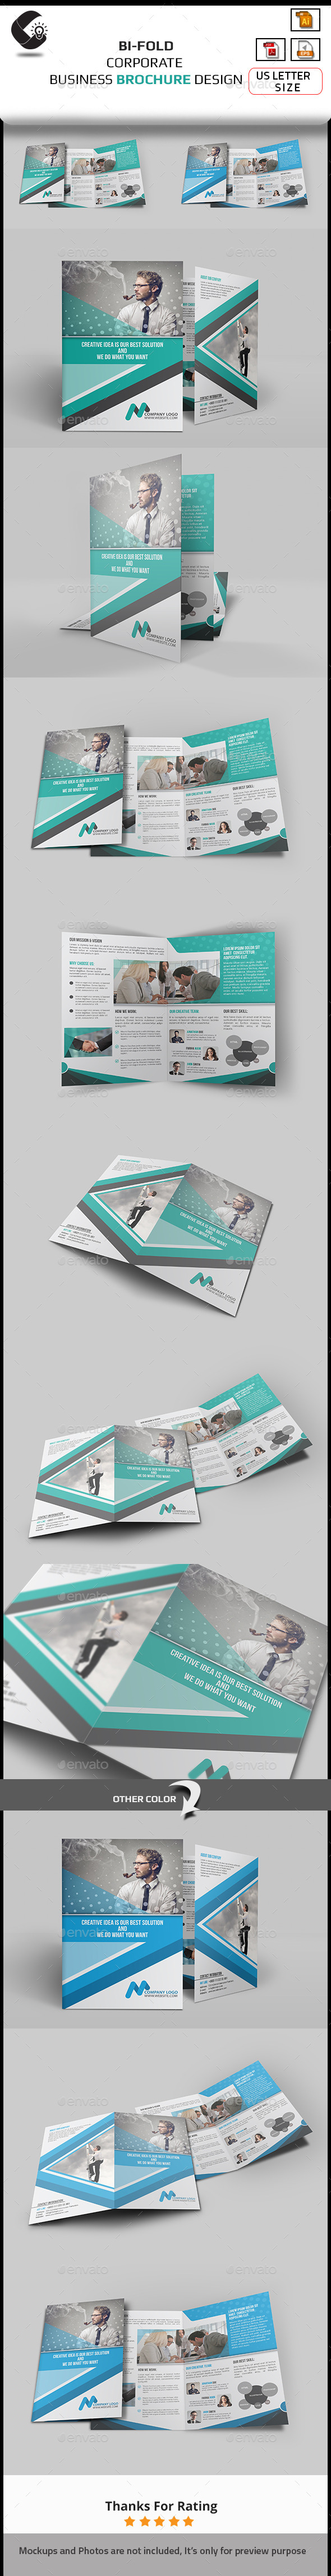 GraphicRiver Bi-fold Brochure Business Template 10692725